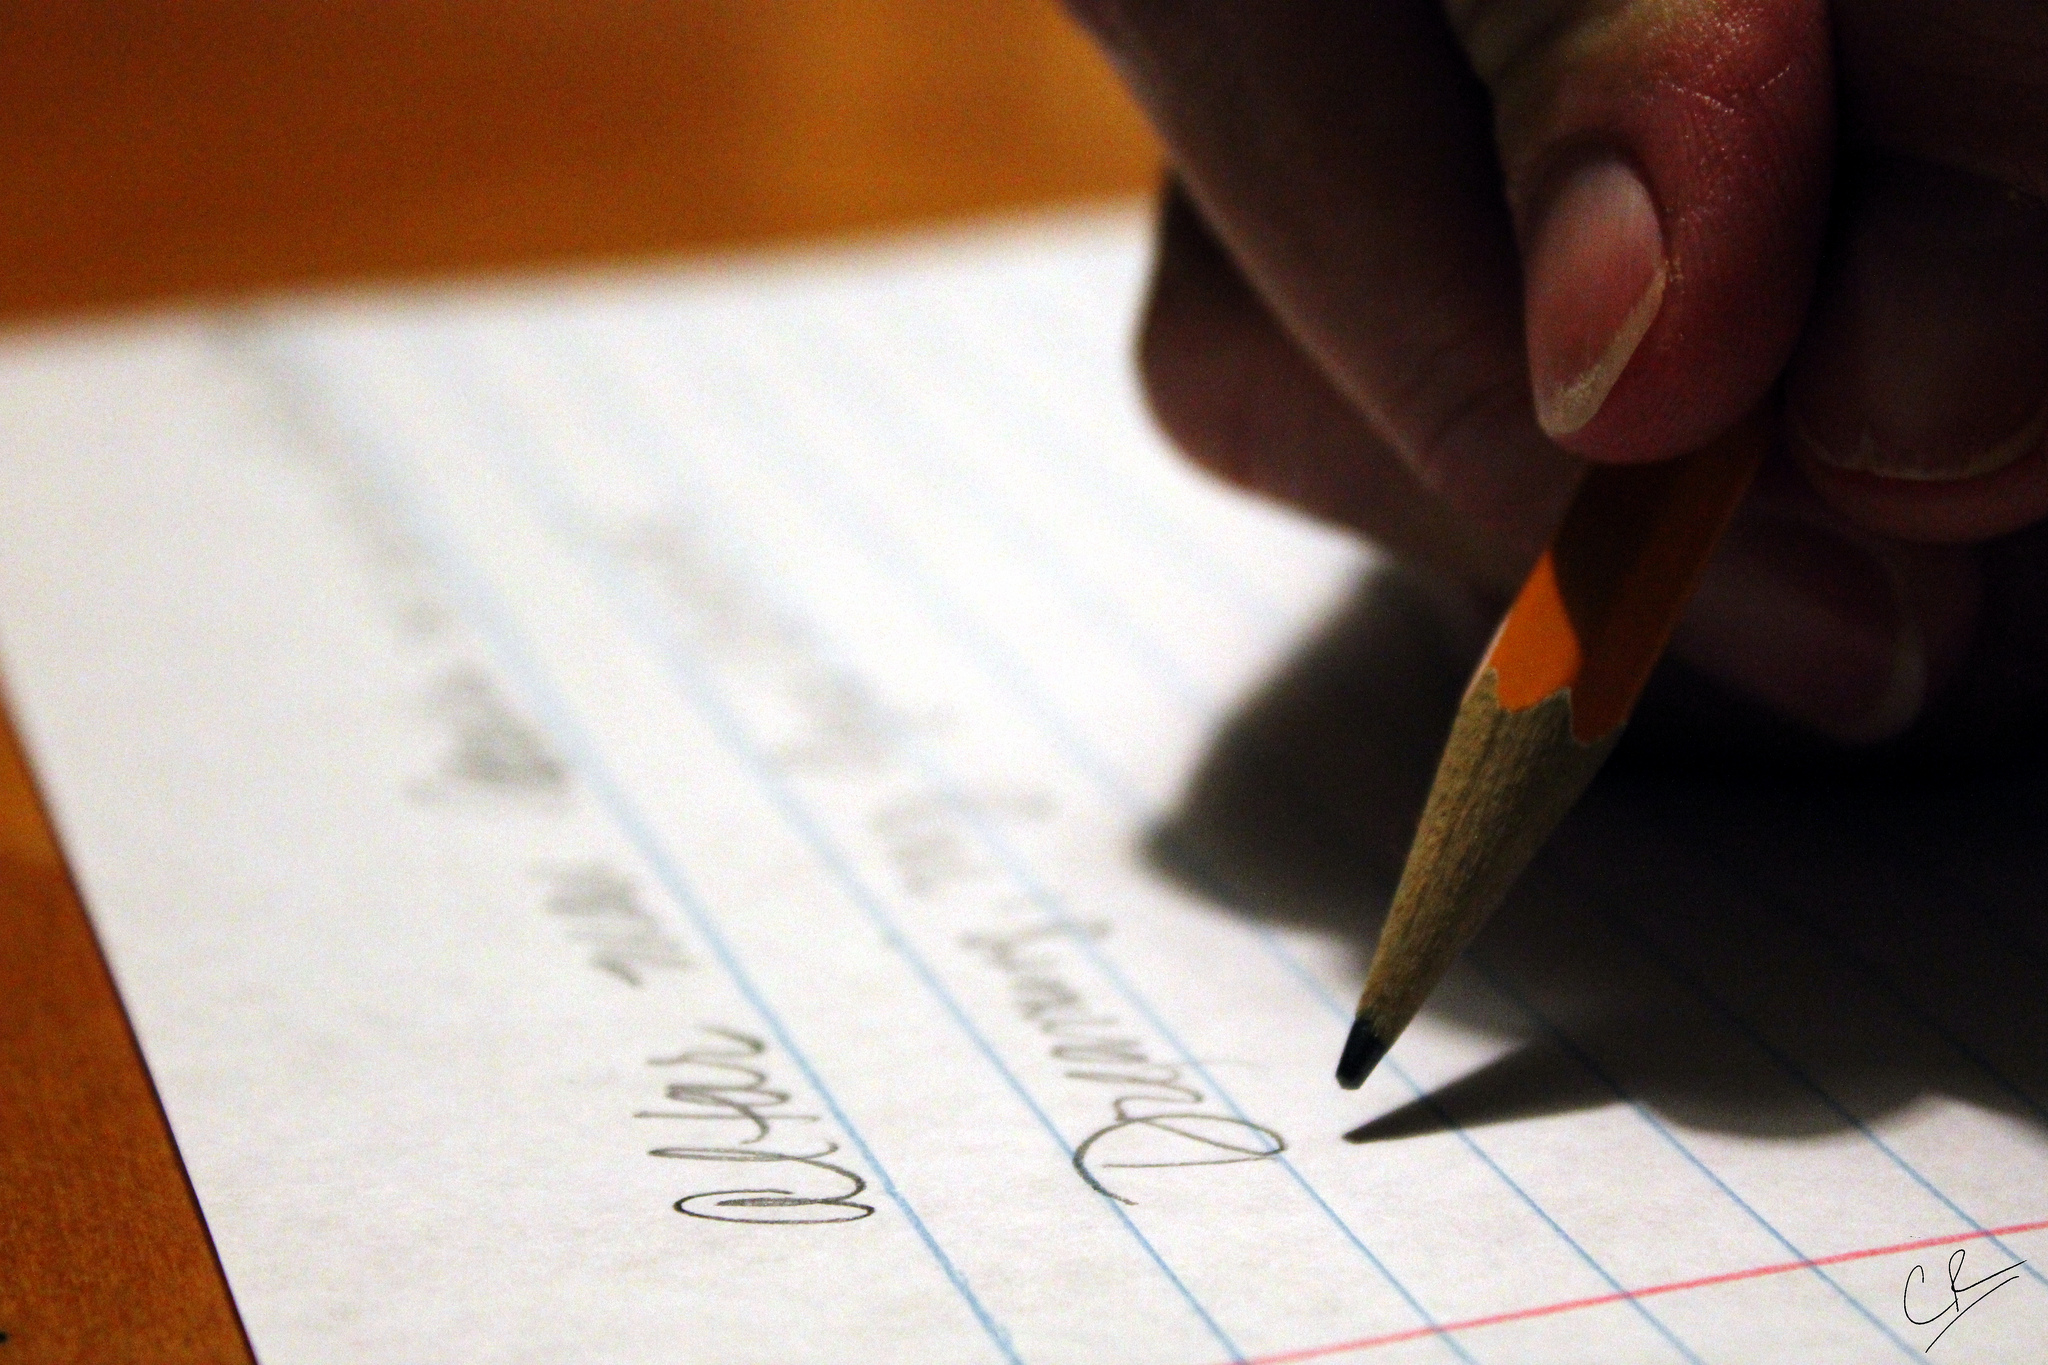 Necessary Tips to Improve Your Essay Writing Skills